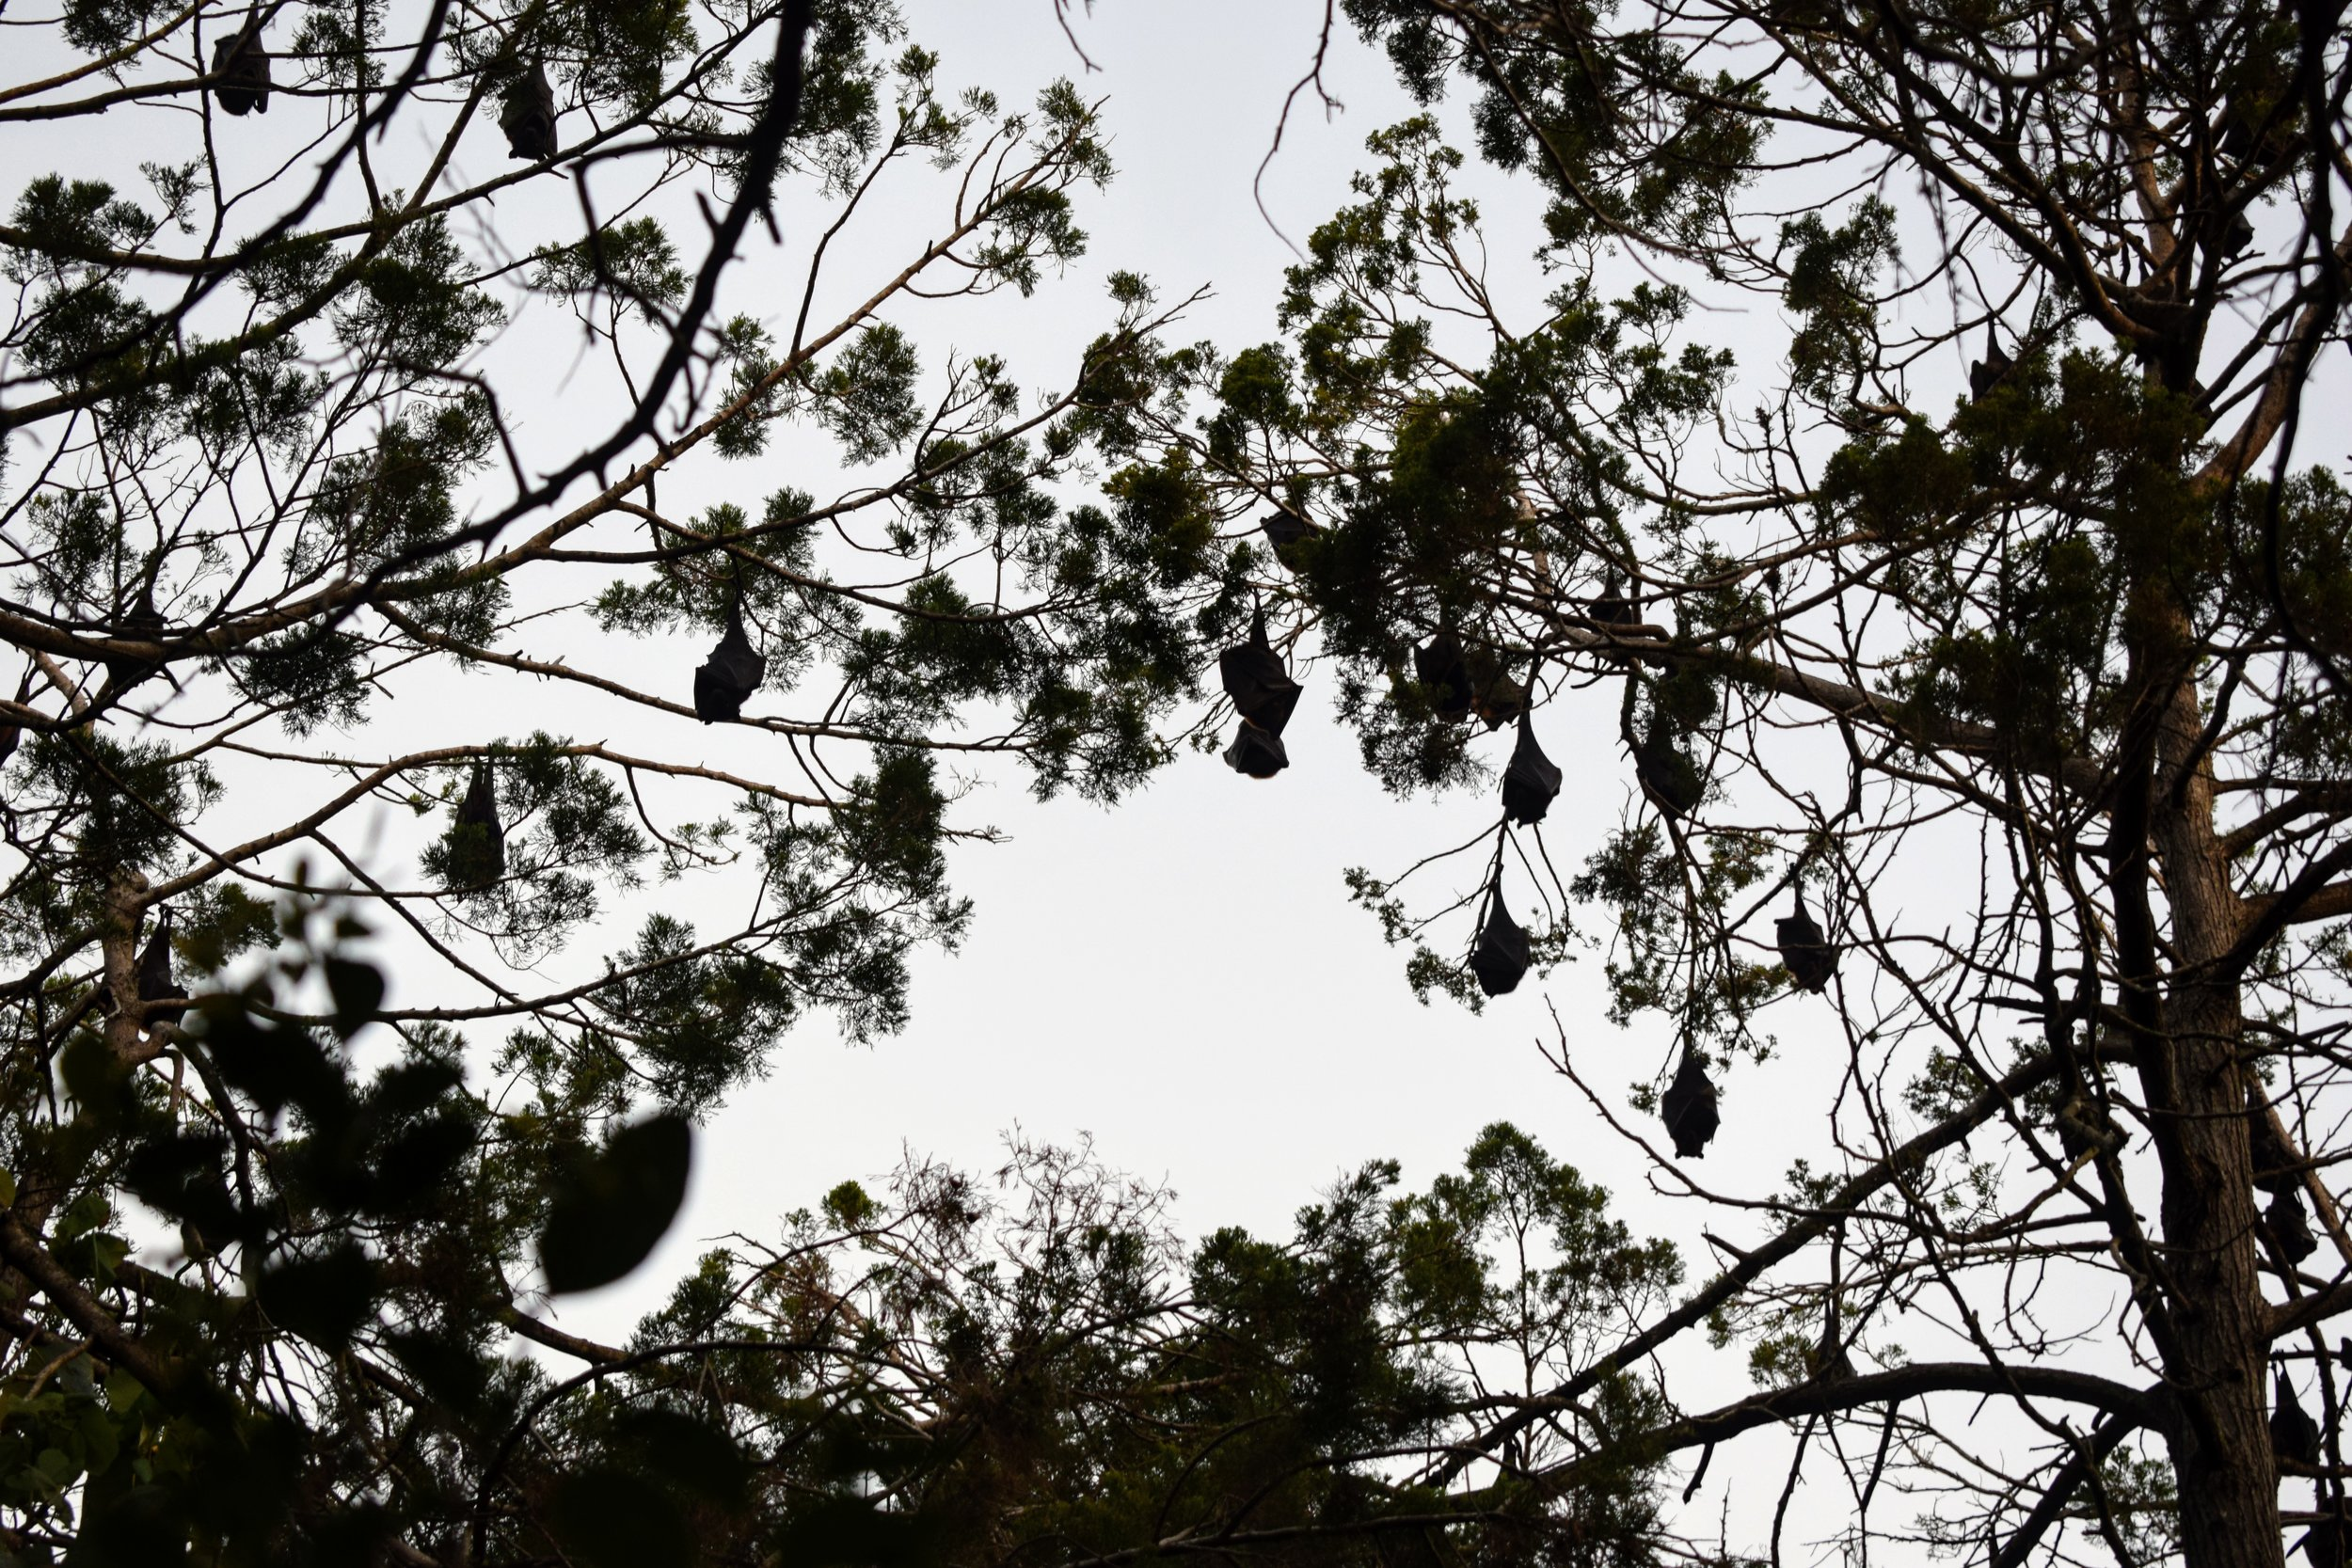 Aussies don't really do Halloween... So we went to hang out with the bats at Tooan Tooan Creek instead.